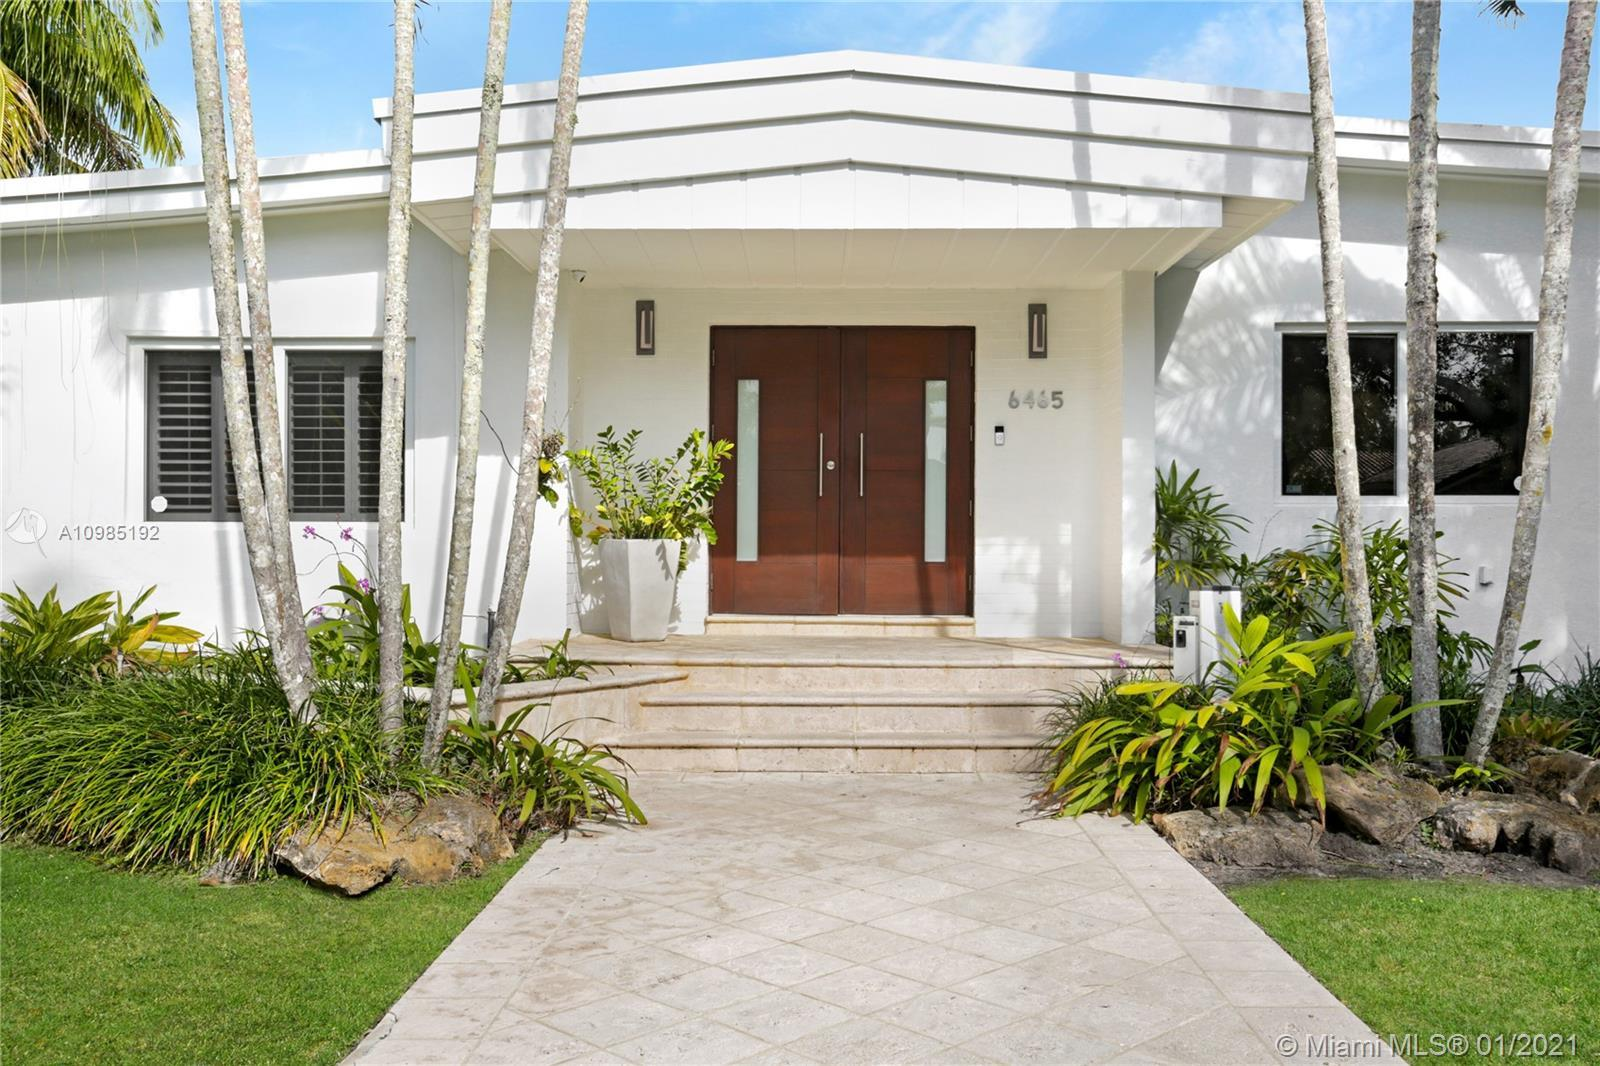 Beautifully updated Pinecrest residence offering 4 bedrooms and 3-1/2 baths, N/S tennis court, and p